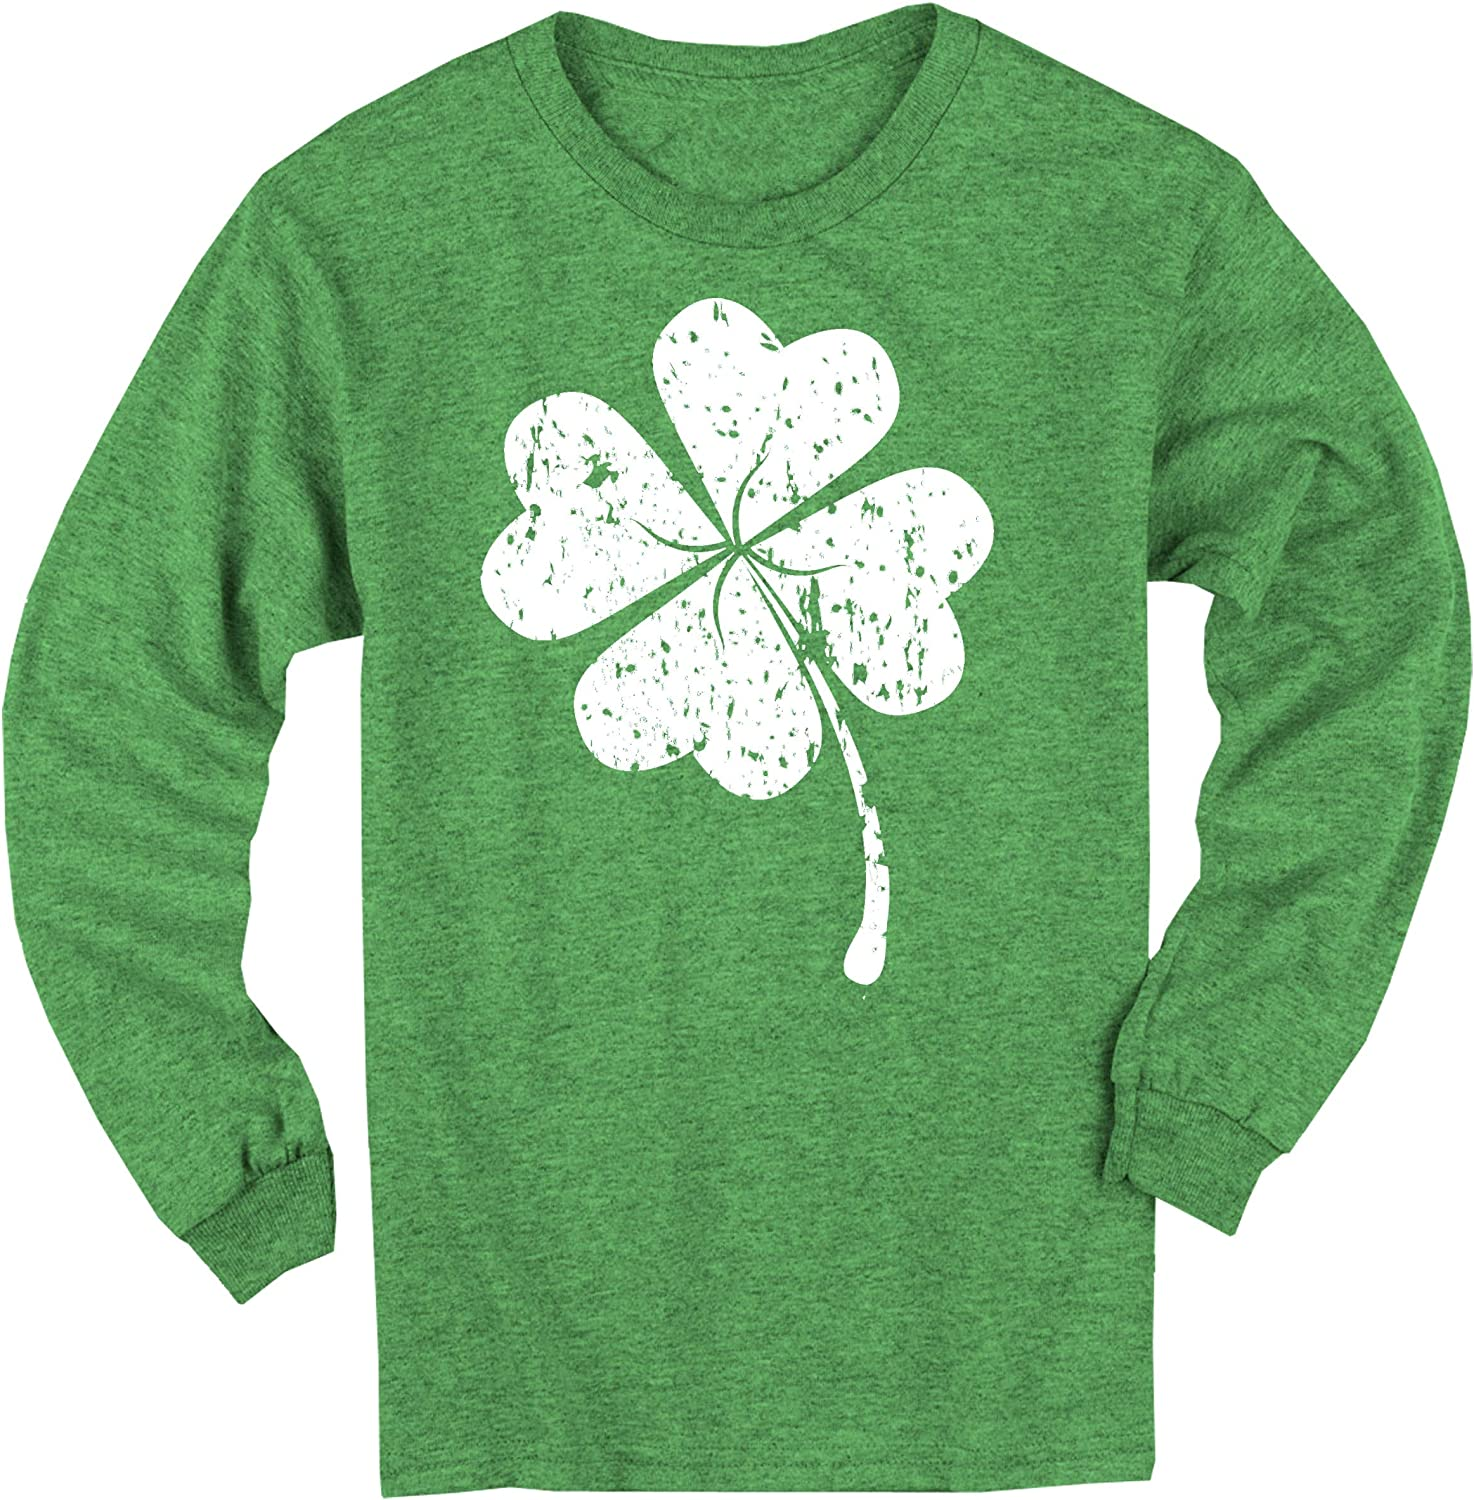 Happy Family Clothing Kids New products world's highest Credence quality popular Lucky Four Long T- Leaf Sleeve Clover